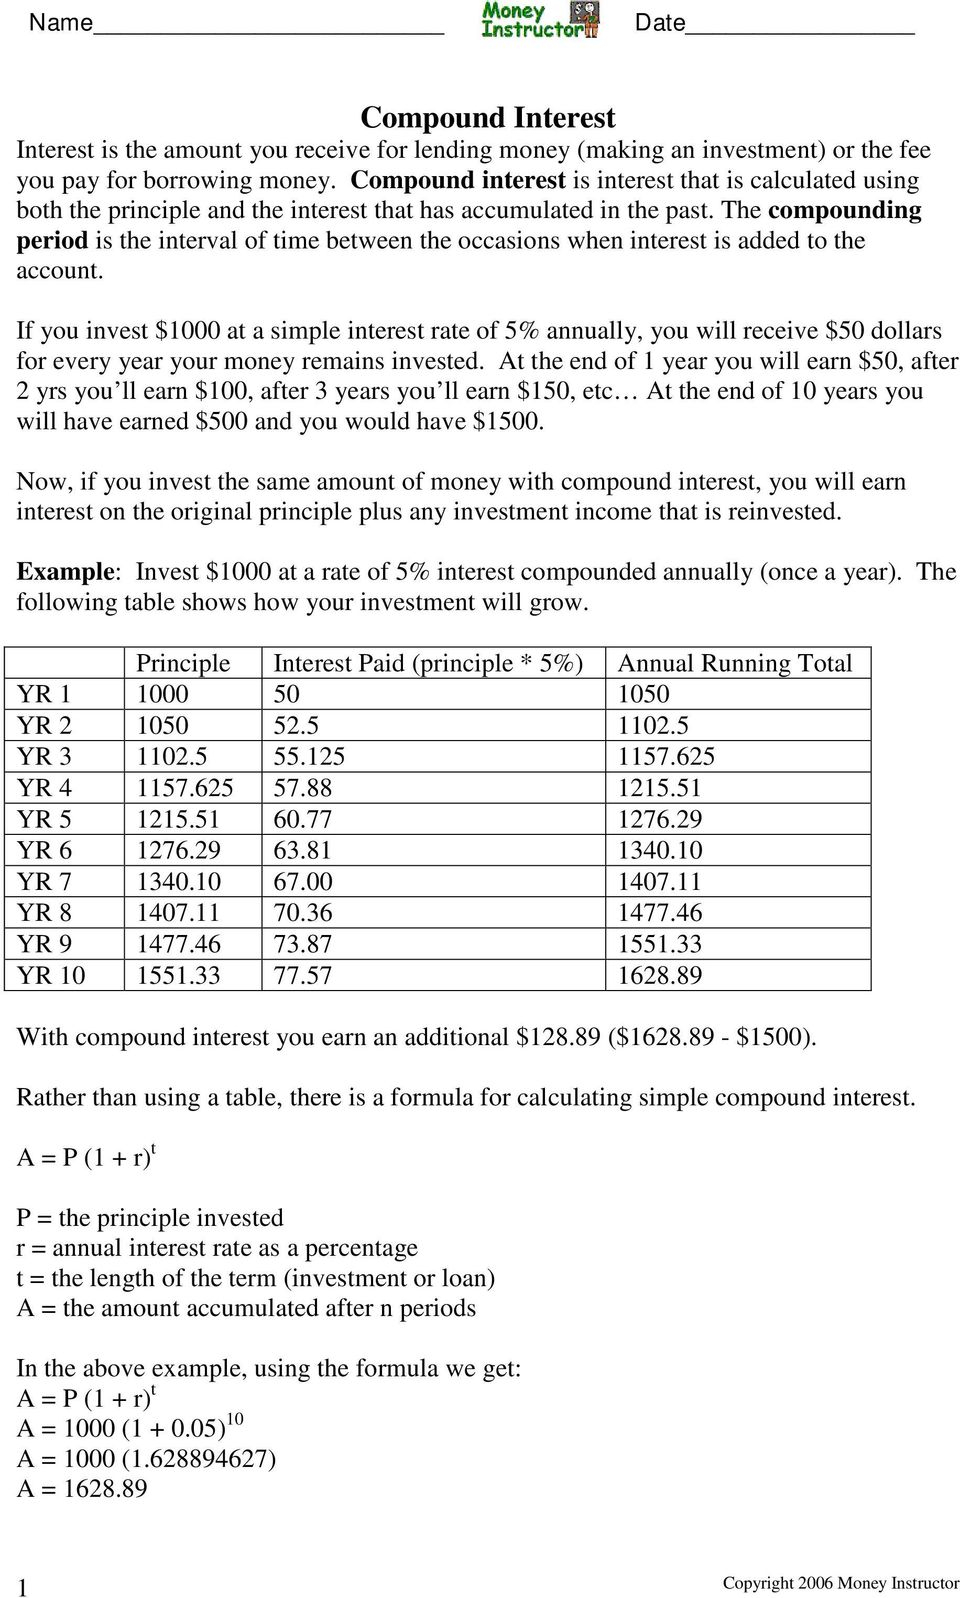 With Compound Interest You Earn An Additional $ ($ $1500